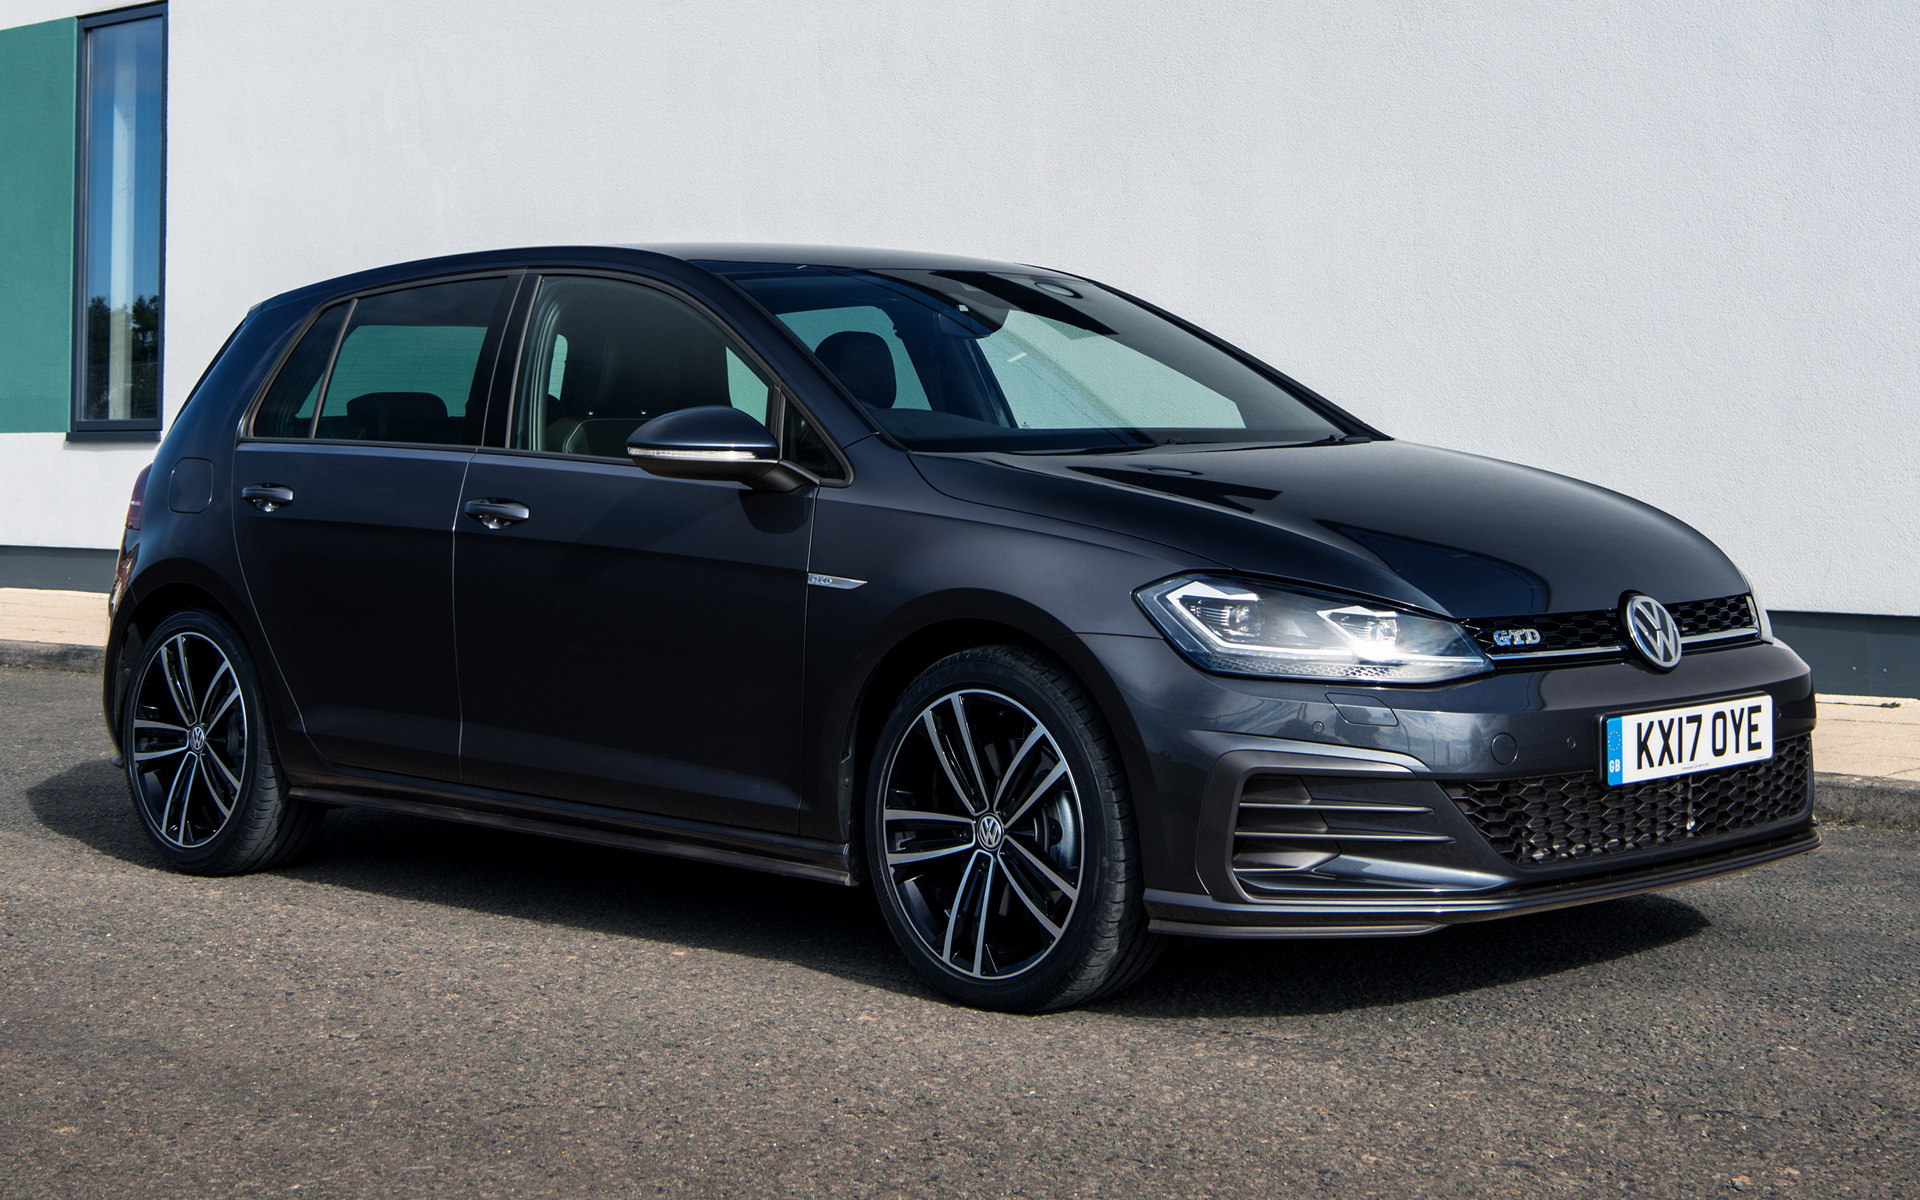 2017 Volkswagen Golf GTD 5-door (UK) - Wallpapers and HD Images | Car Pixel